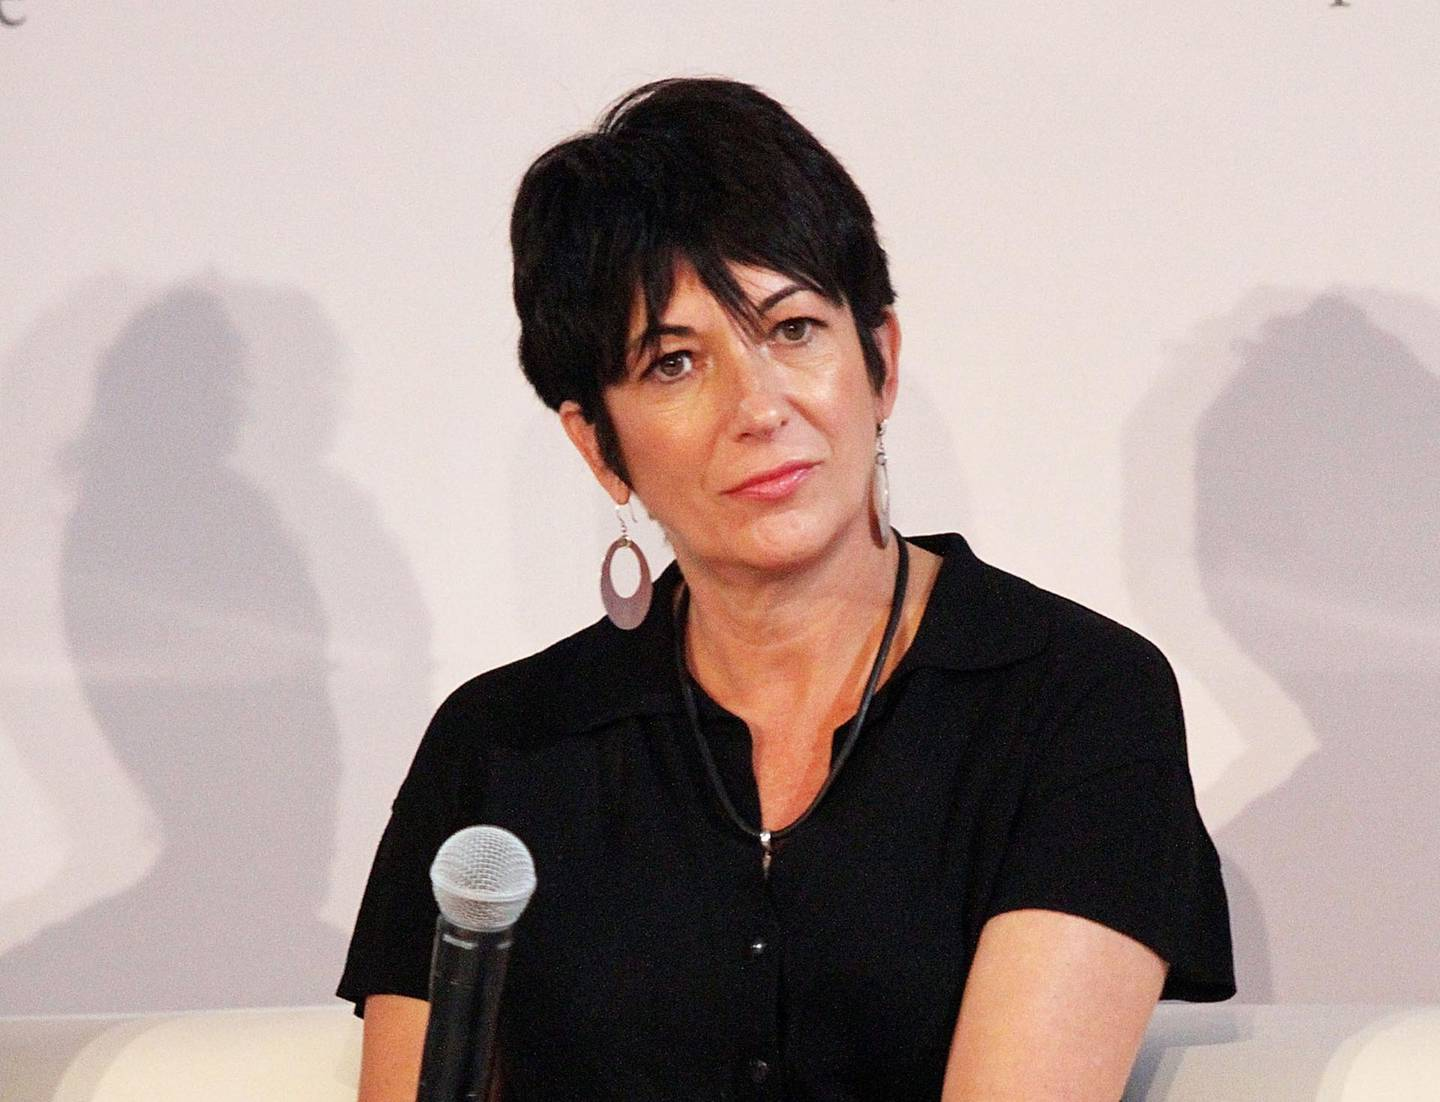 (FILES) In this file photo taken on September 20, 2013, Ghislaine Maxwell attends day 1 of the 4th Annual WIE Symposium at Center 548  in New York City.    Maxwell, the former girlfriend of late financier Jeffrey Epstein, was arrested in the United States on July 2, 2020, by FBI officers investigating his sex crimes, multiple US media outlets reported. / AFP / GETTY IMAGES NORTH AMERICA / Laura Cavanaugh